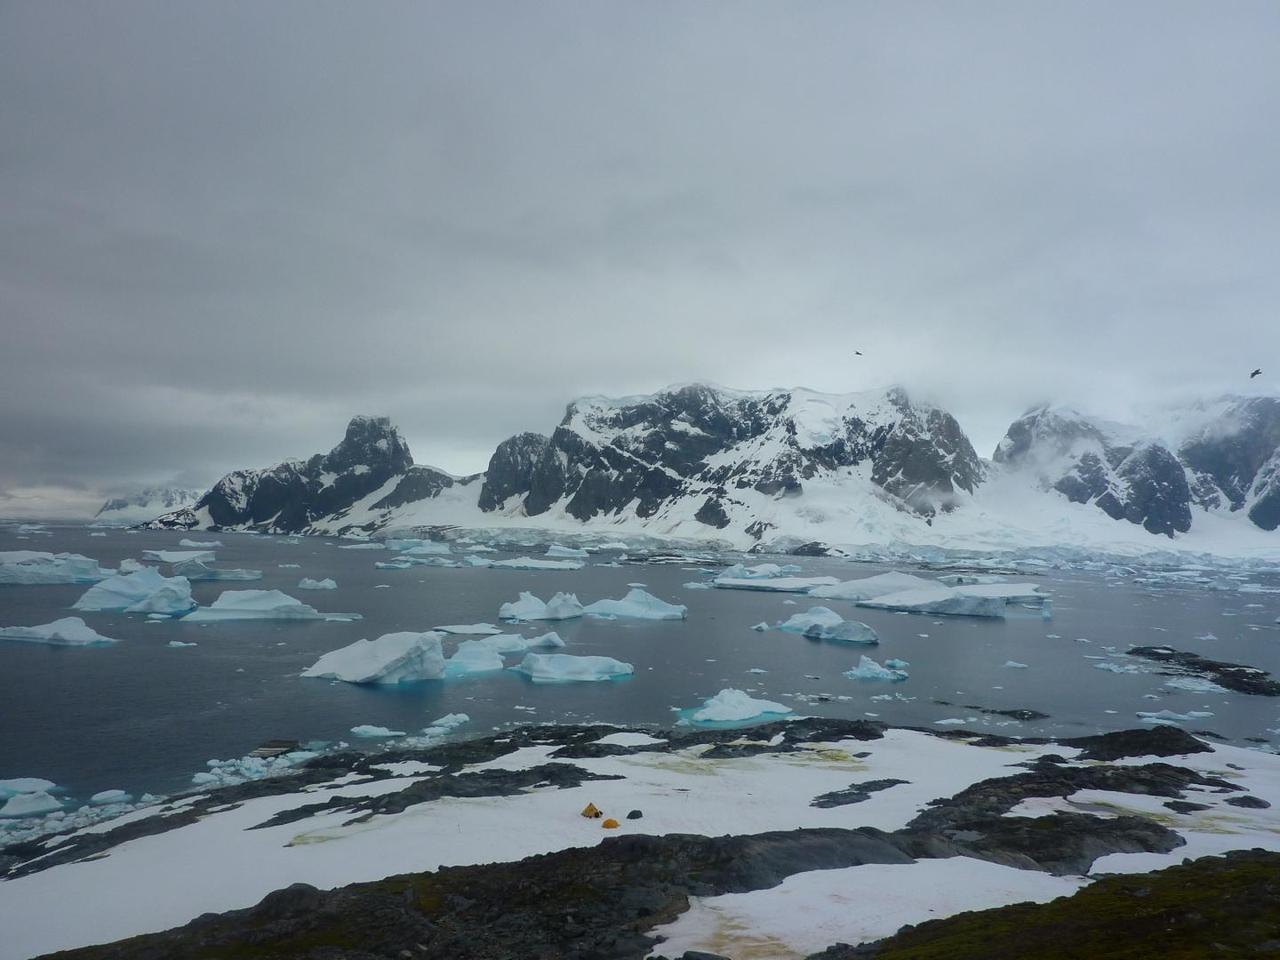 The view from the top of the hill on Green Island, Antarctica, with the researchers' field camp visible below